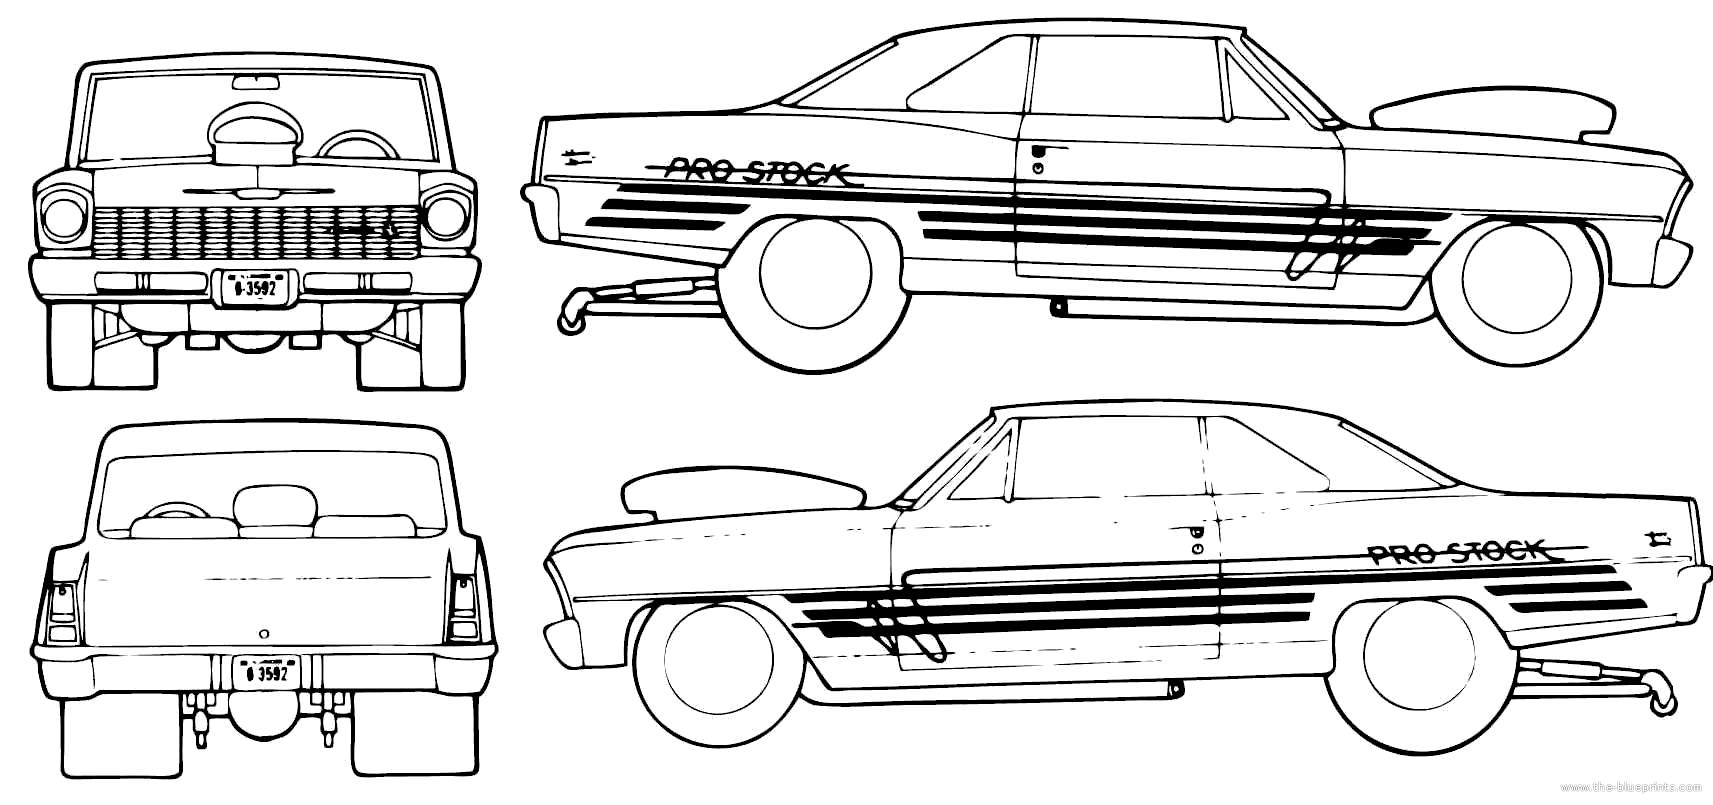 Chevrolet Nova Pro Street Coupe Blueprints Free